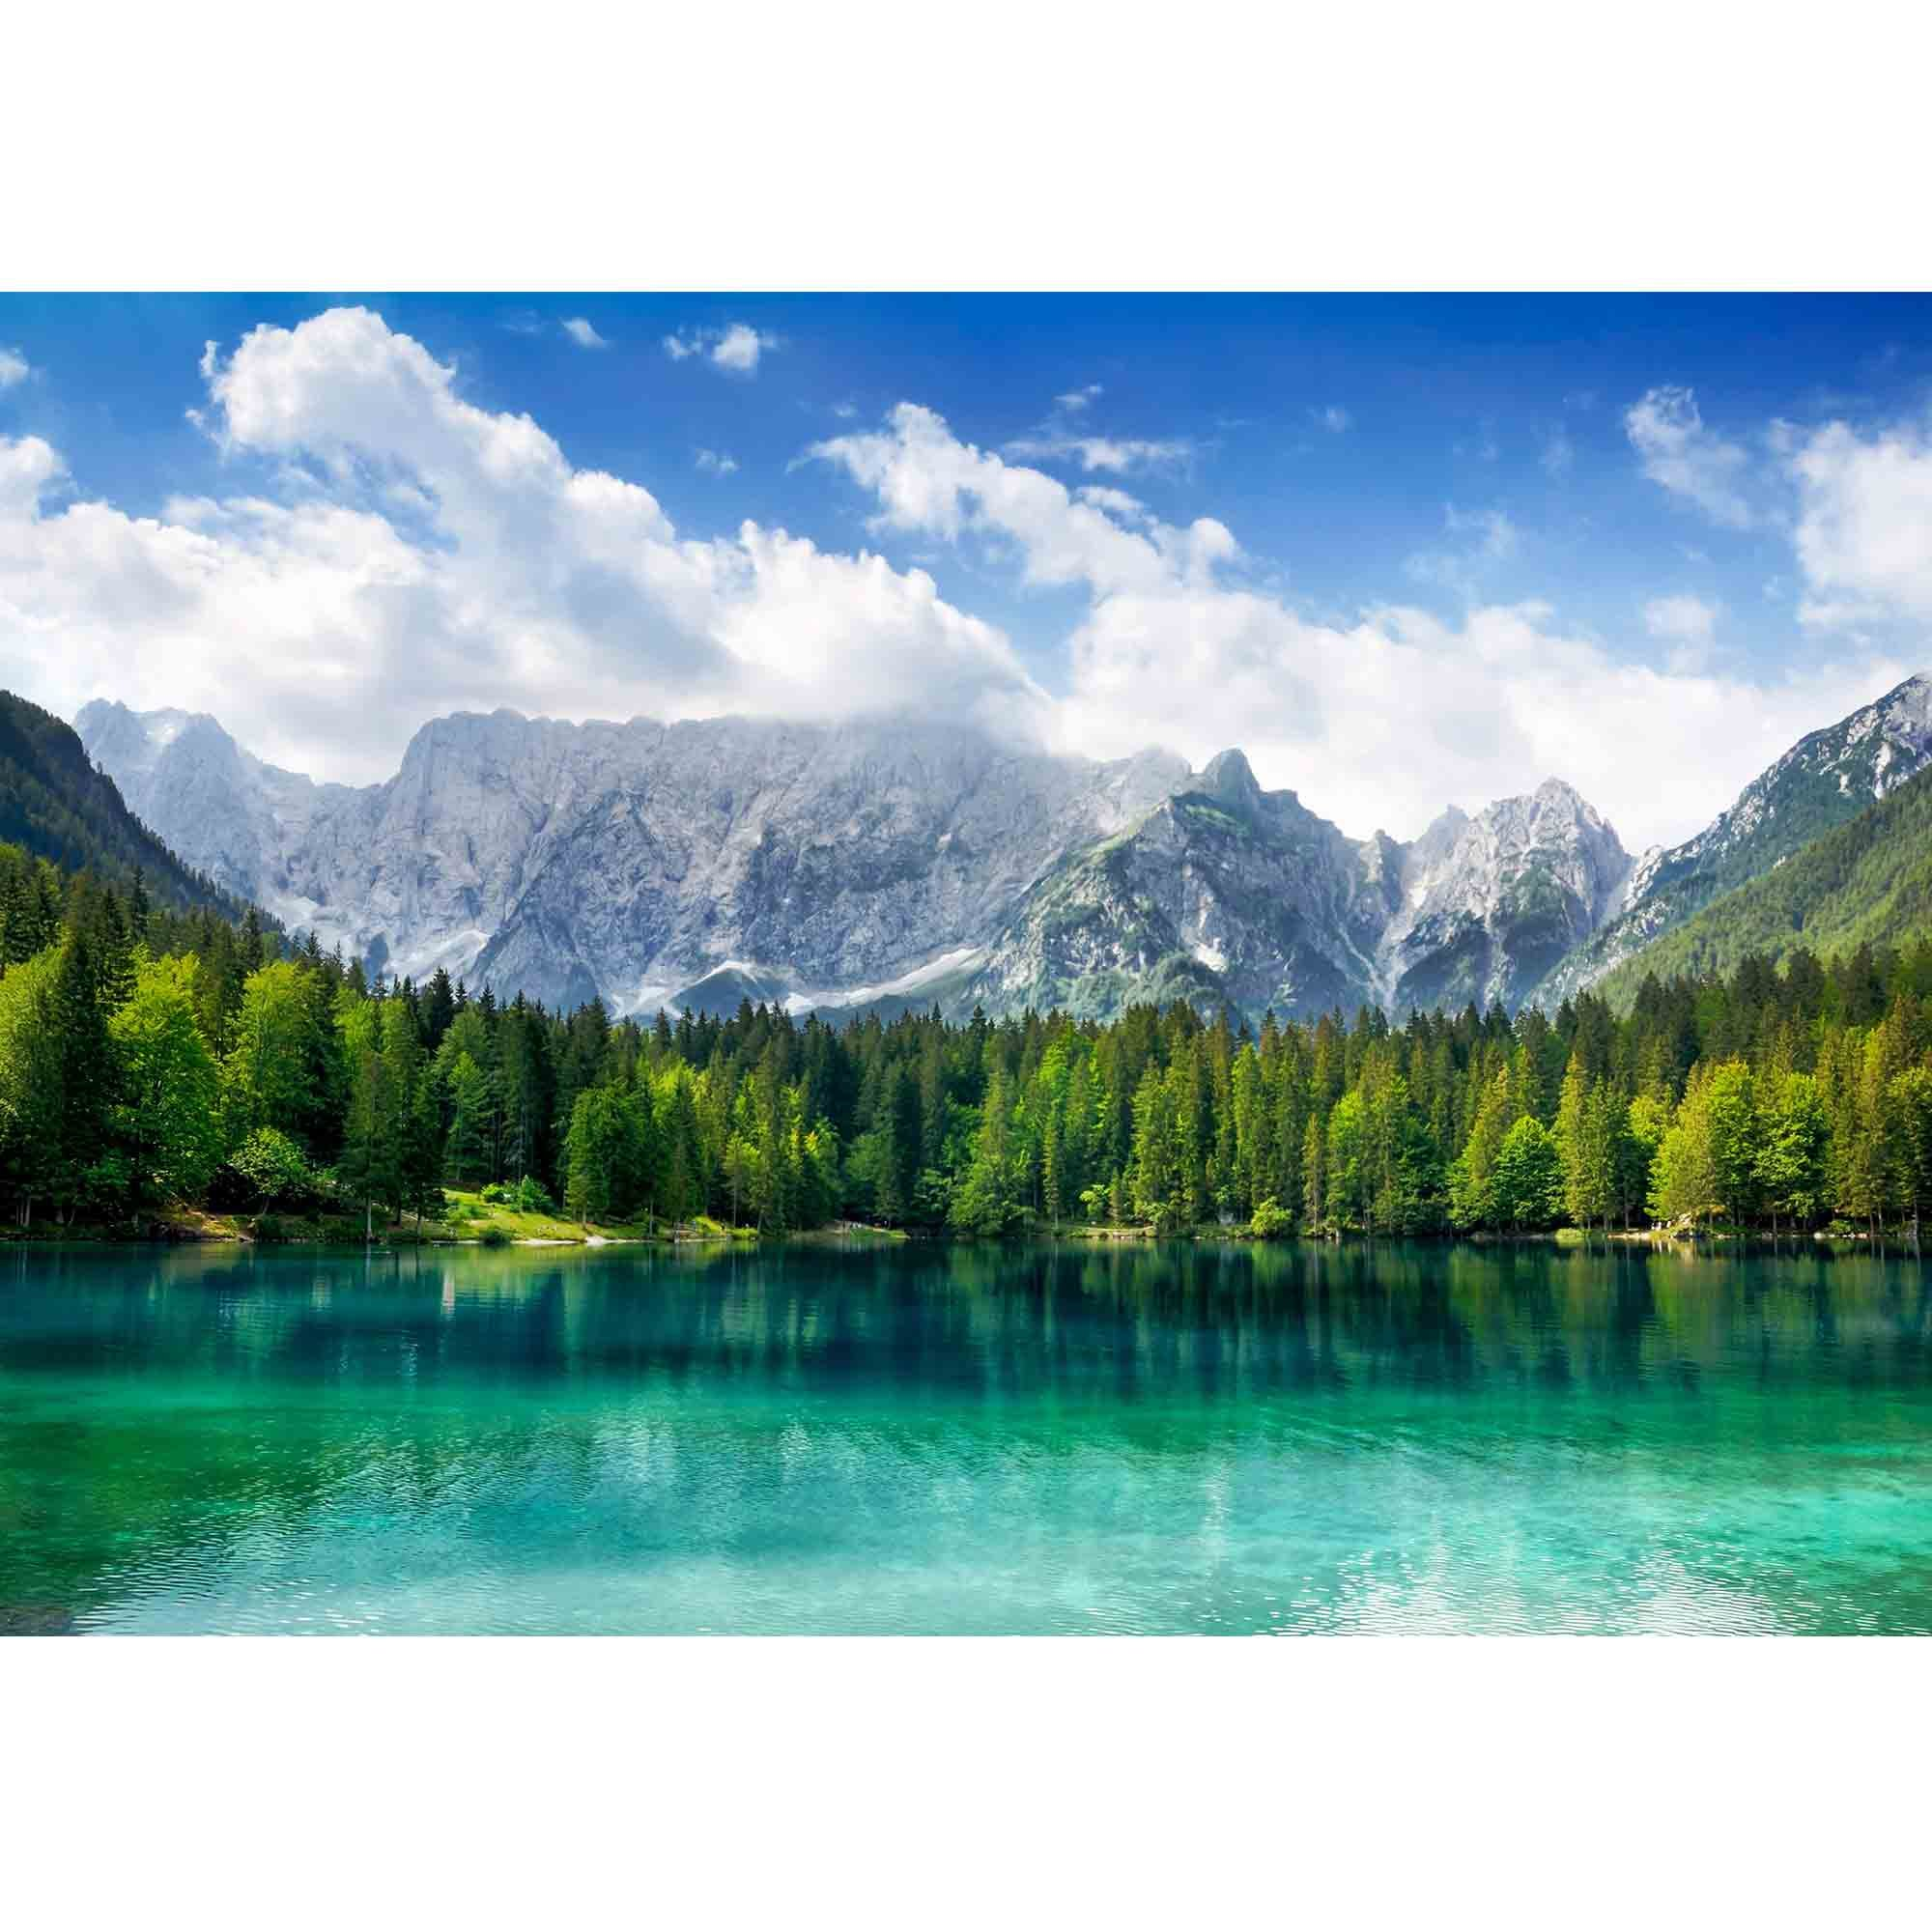 wall26 - Beautiful Landscape with Turquoise Lake, Forest and Mountains - Removable Wall Mural | Self-Adhesive Large Wallpaper - 100x144 inches by wall26 (Image #2)